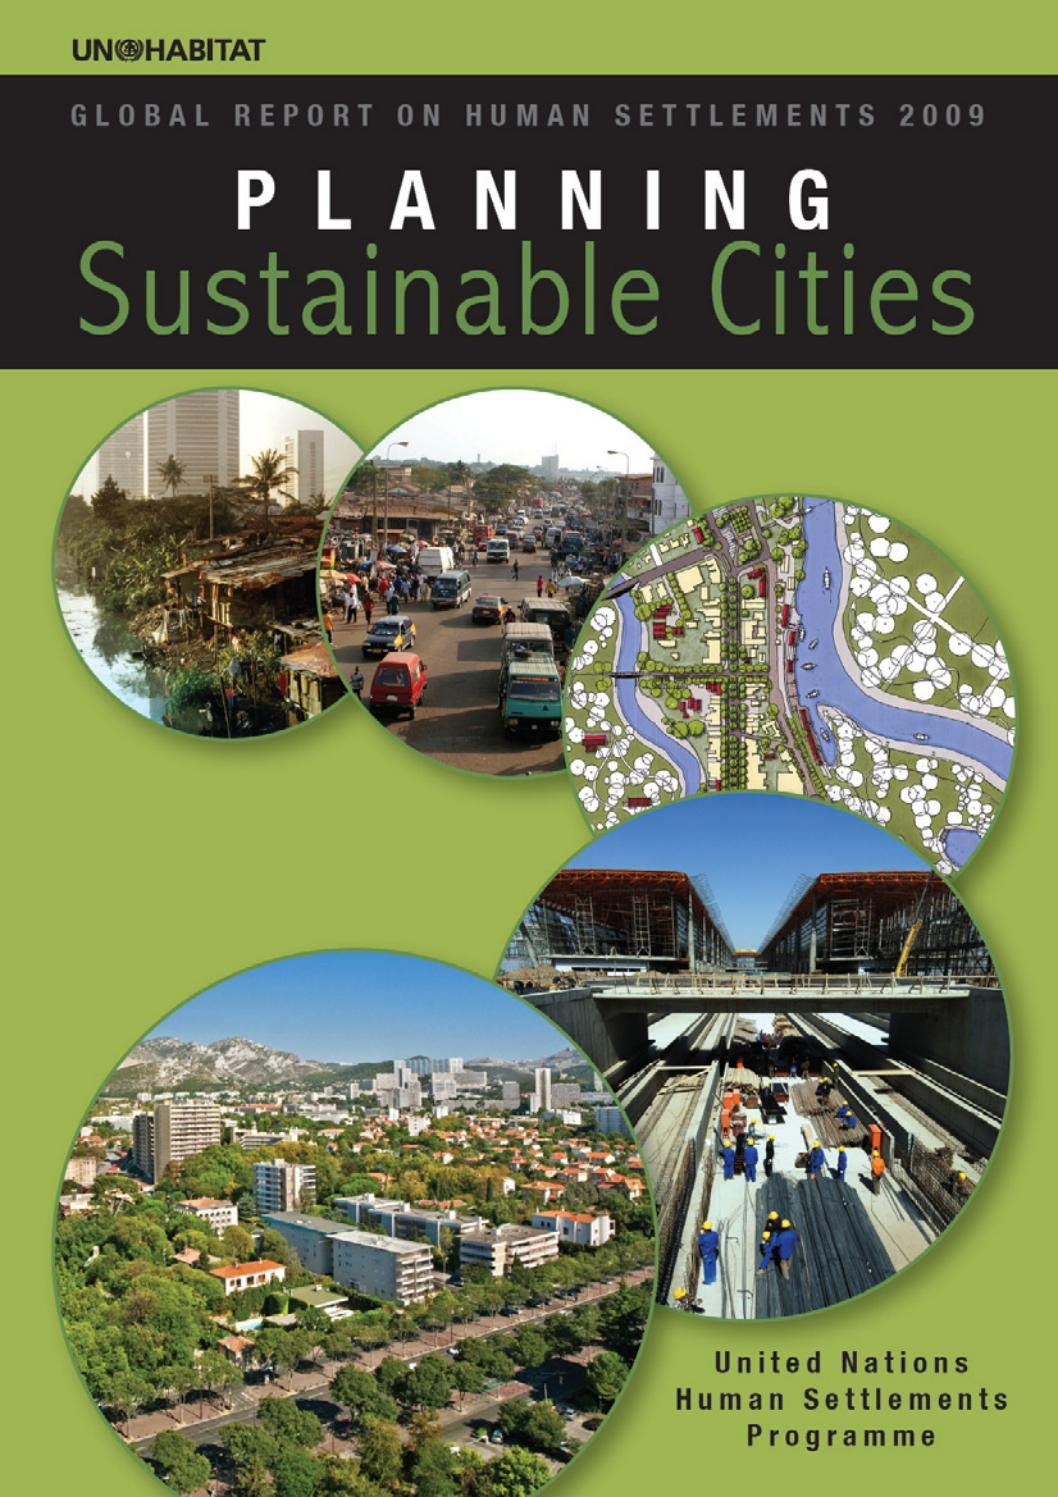 Planning Sustaunable Cities - UN Habitat